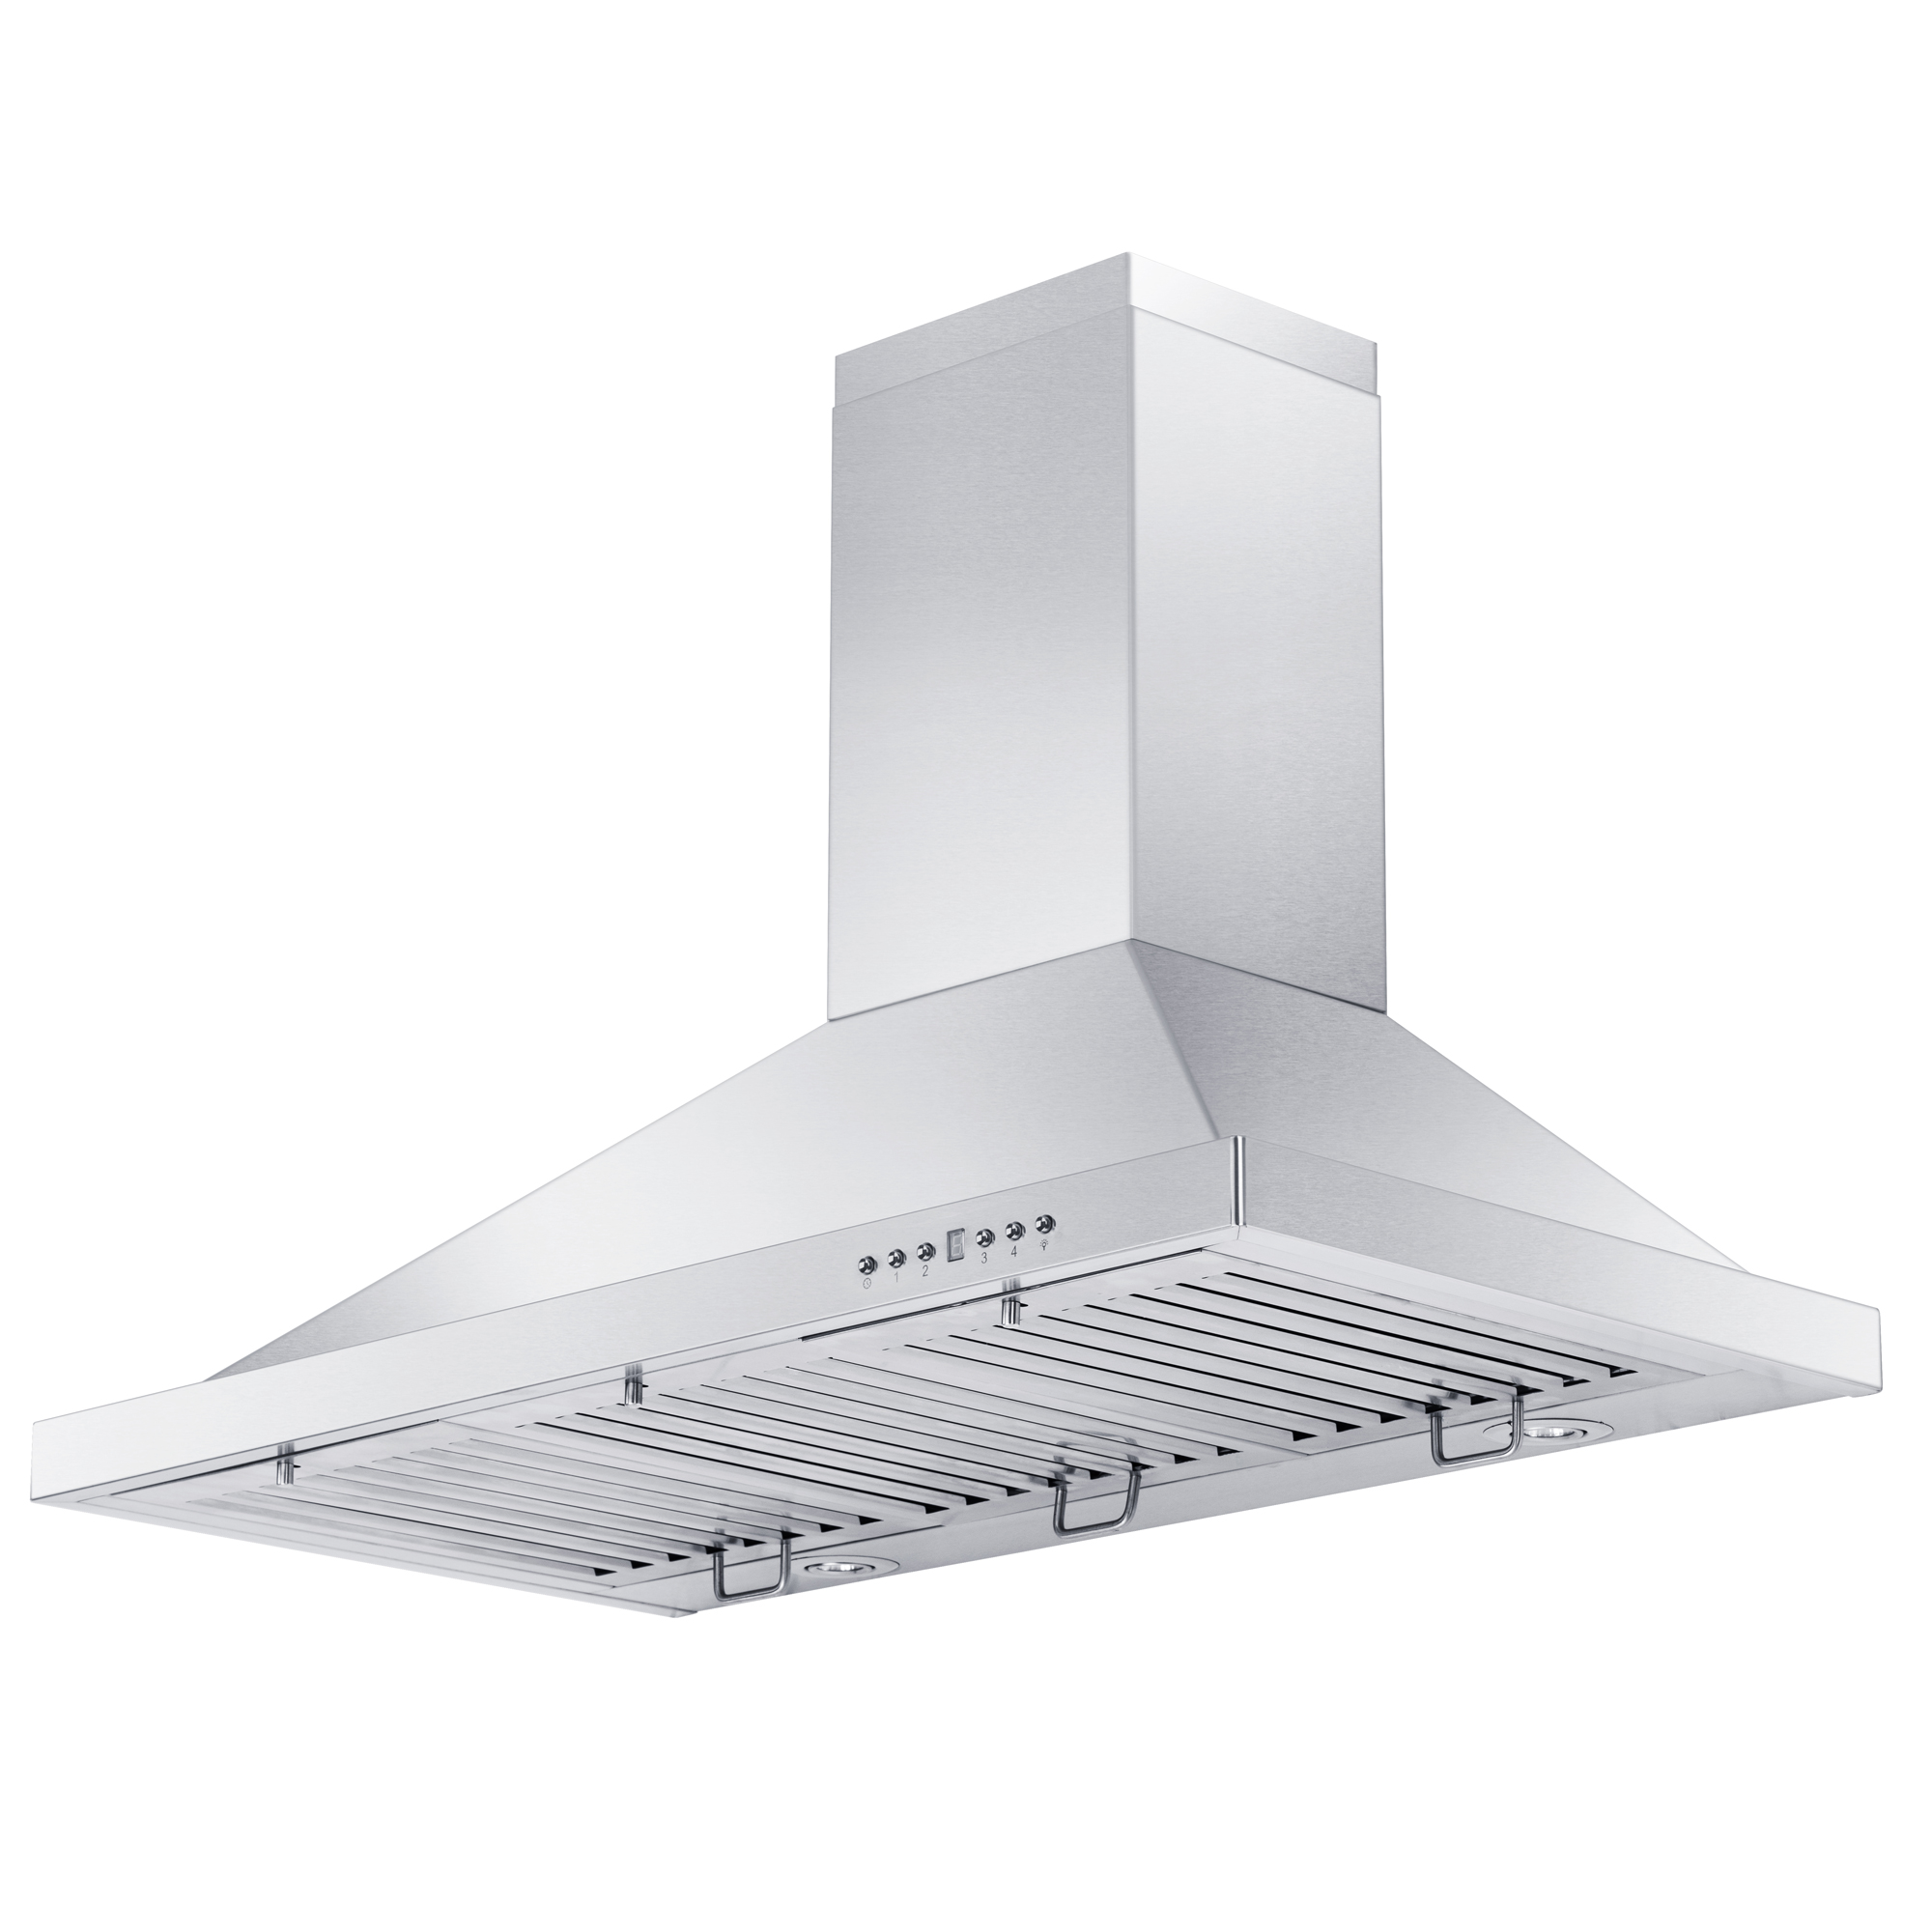 zline-stainless-steel-wall-mounted-range-hood-KB-new-angle-under.jpg